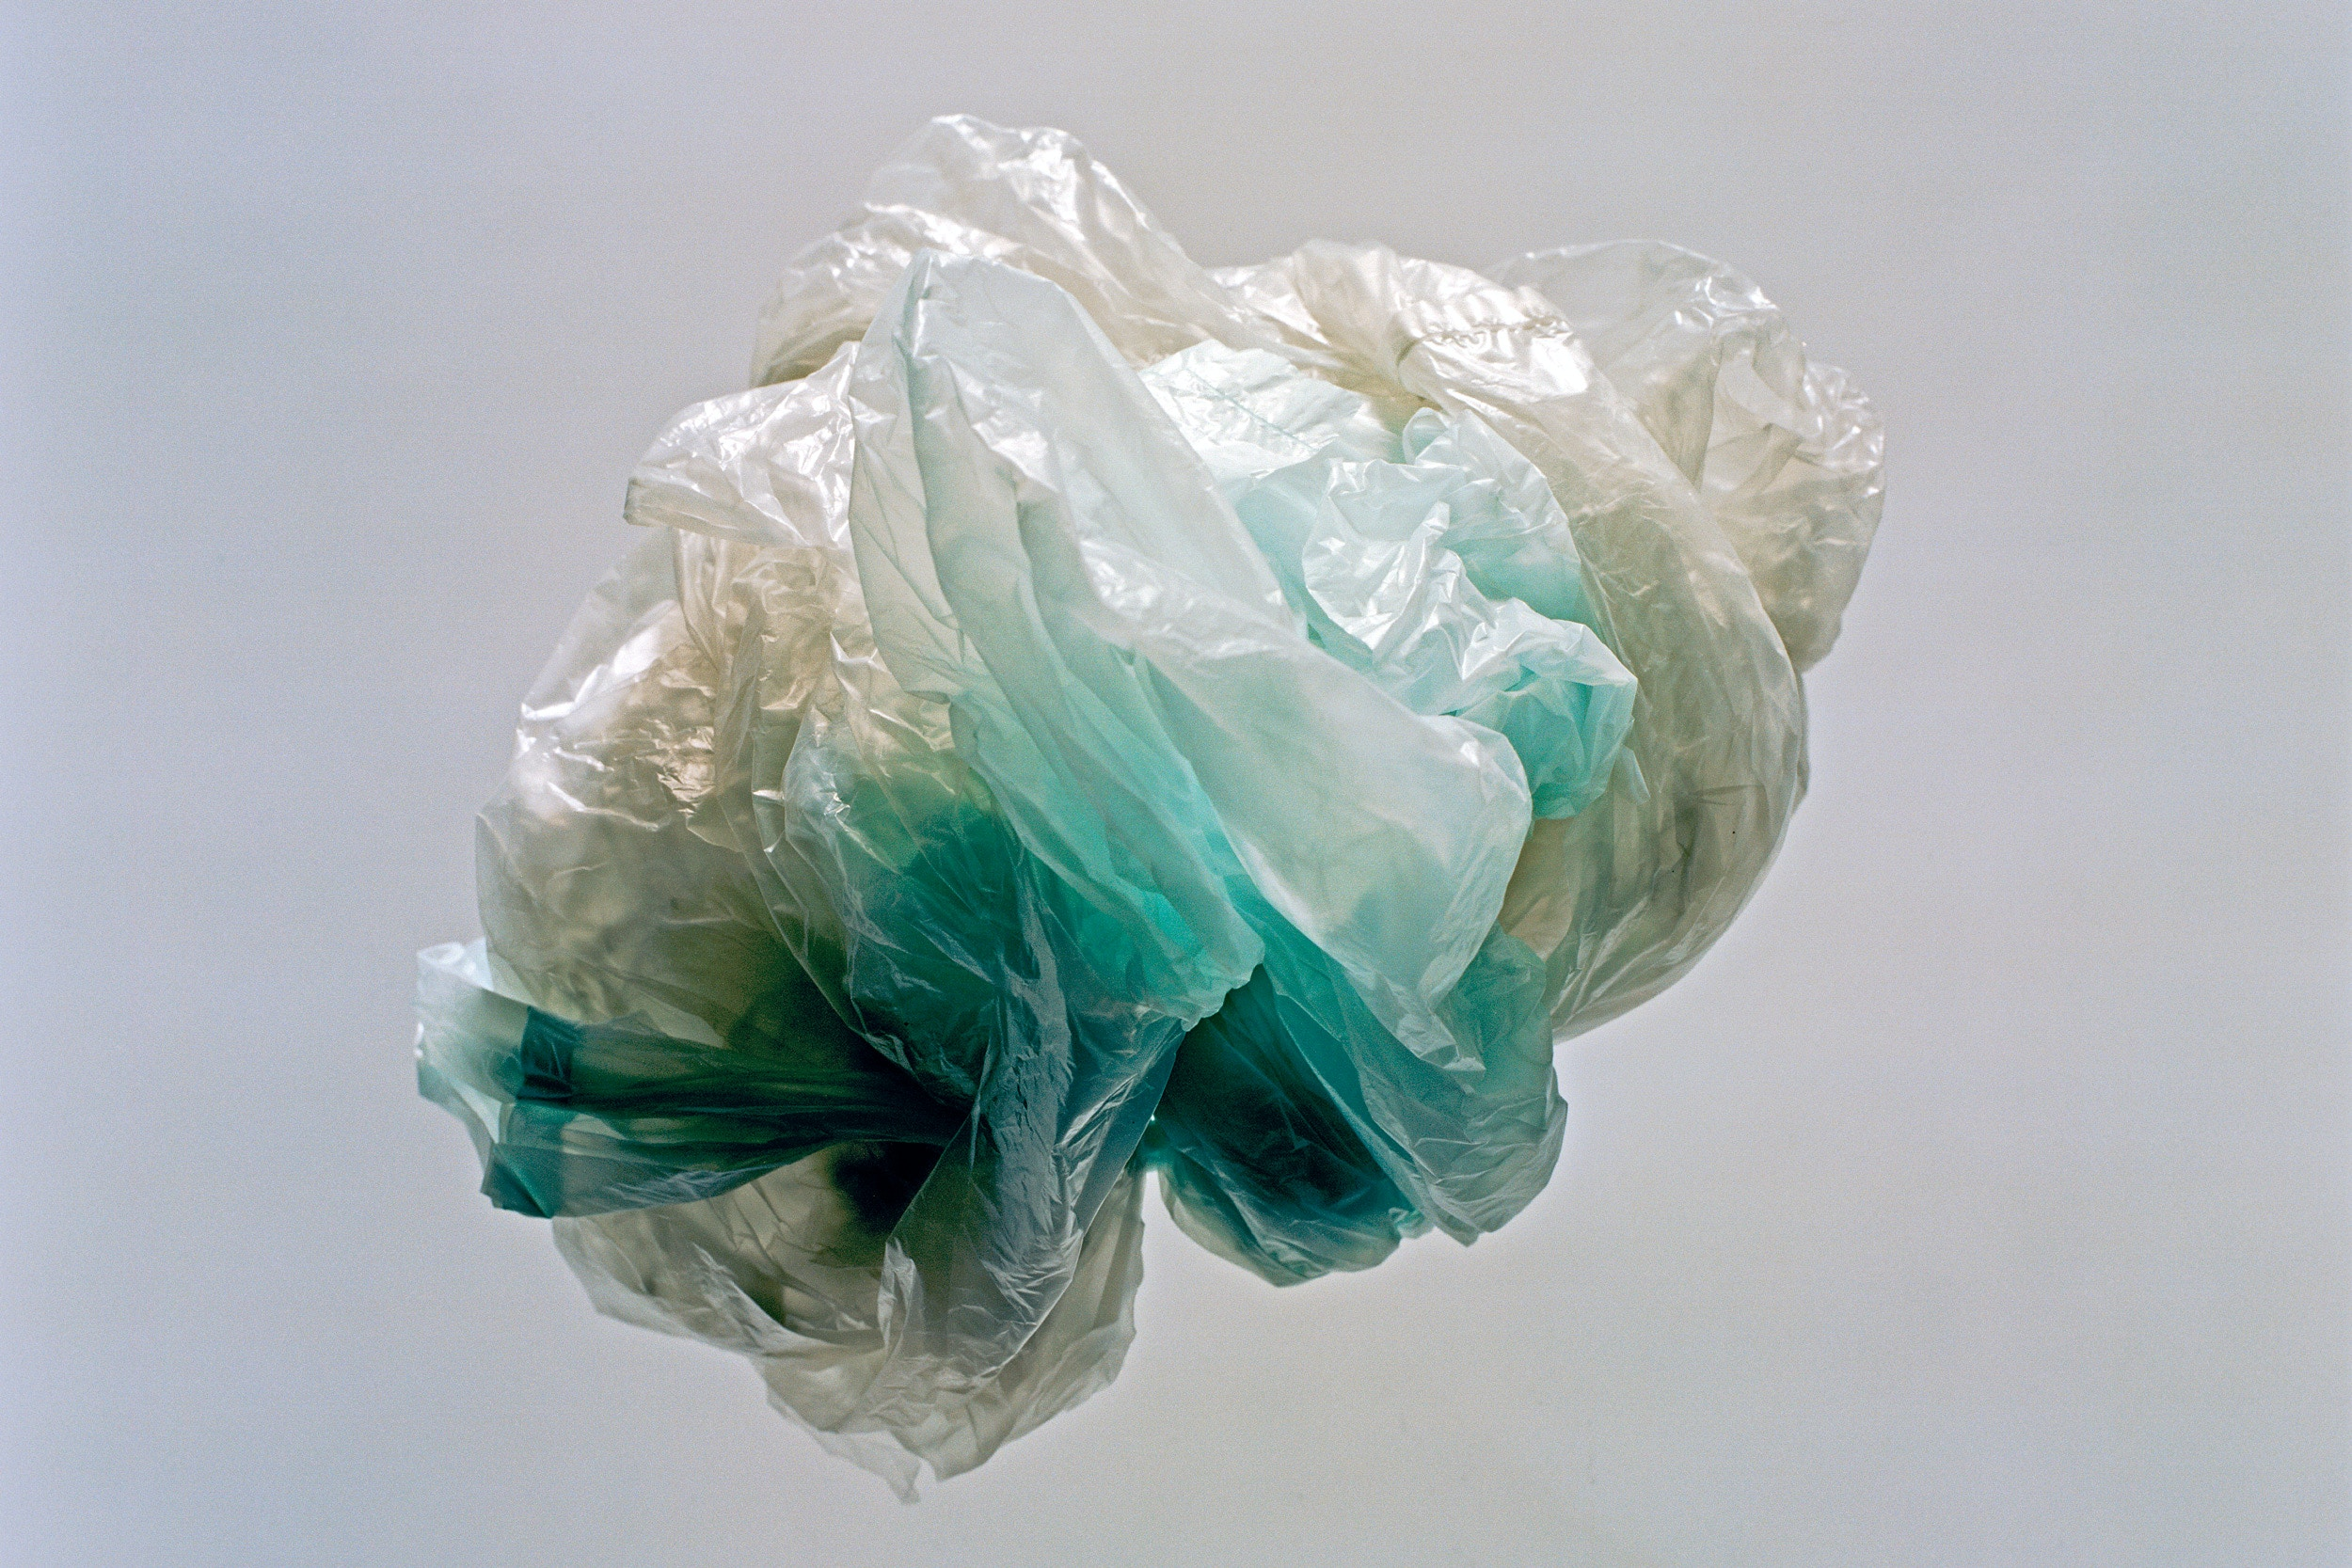 Crumpled plastic bag, studio shot